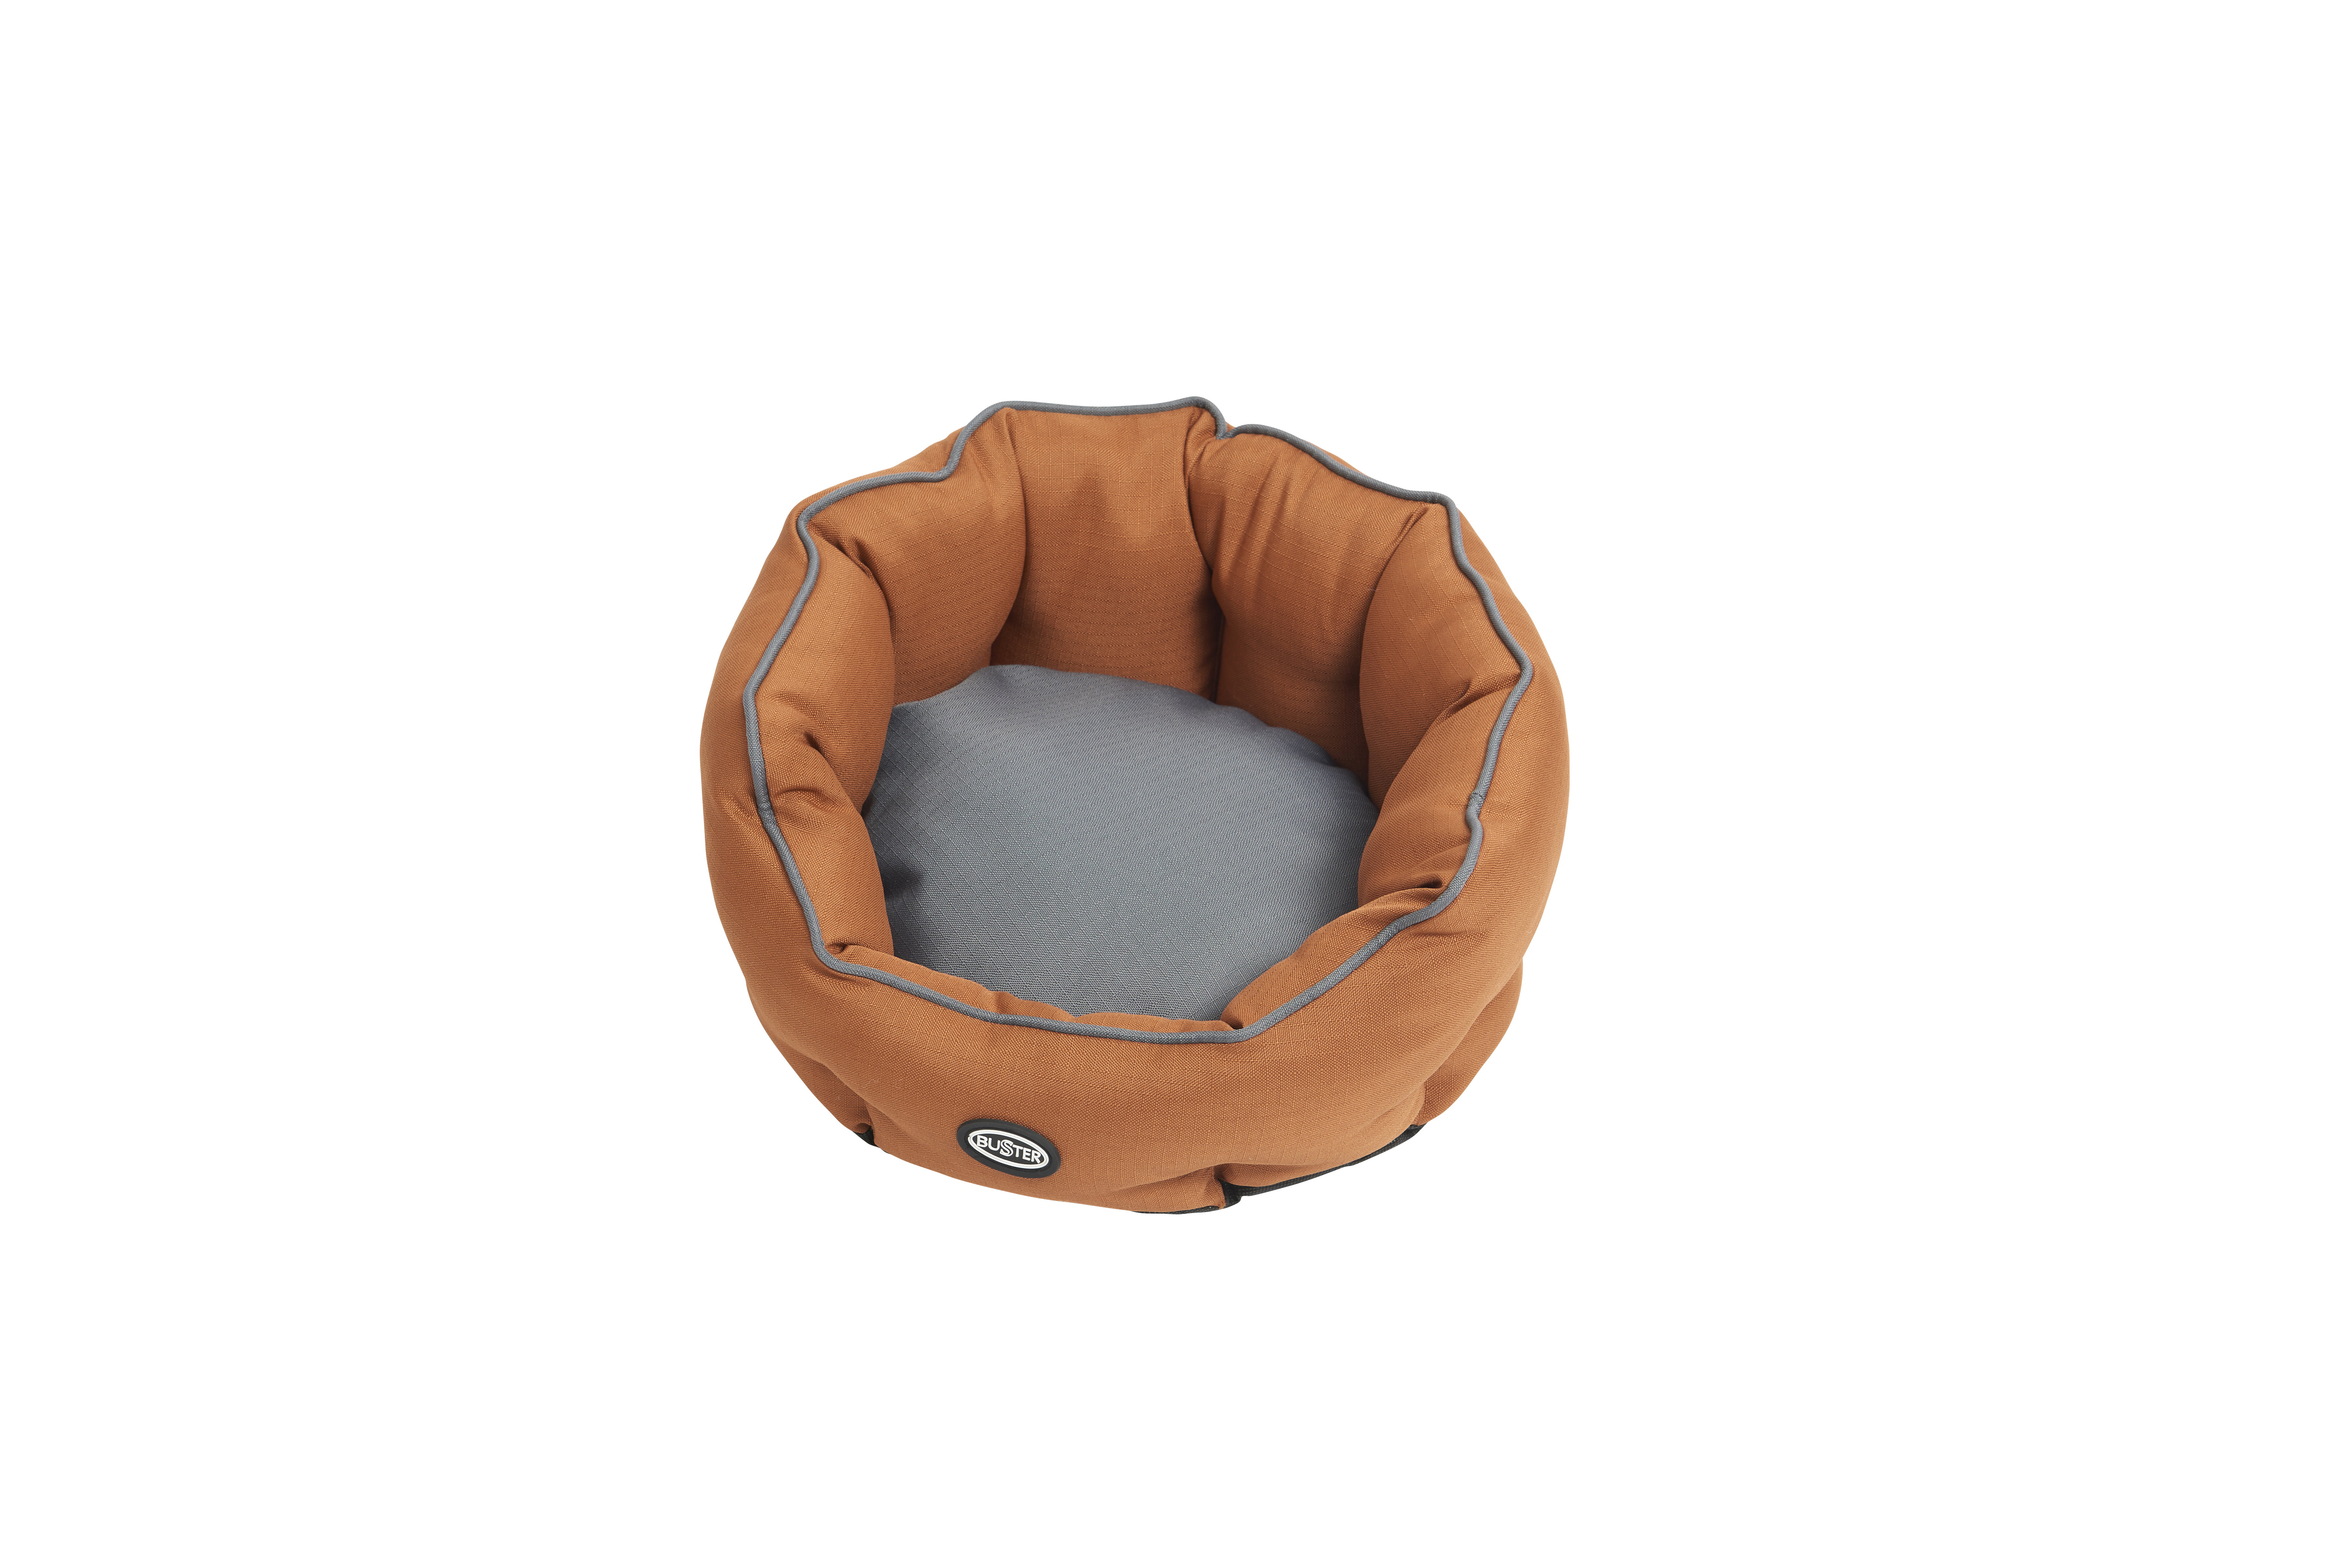 BUSTER Cocoon bed 45 cm, leather brown/steel grey